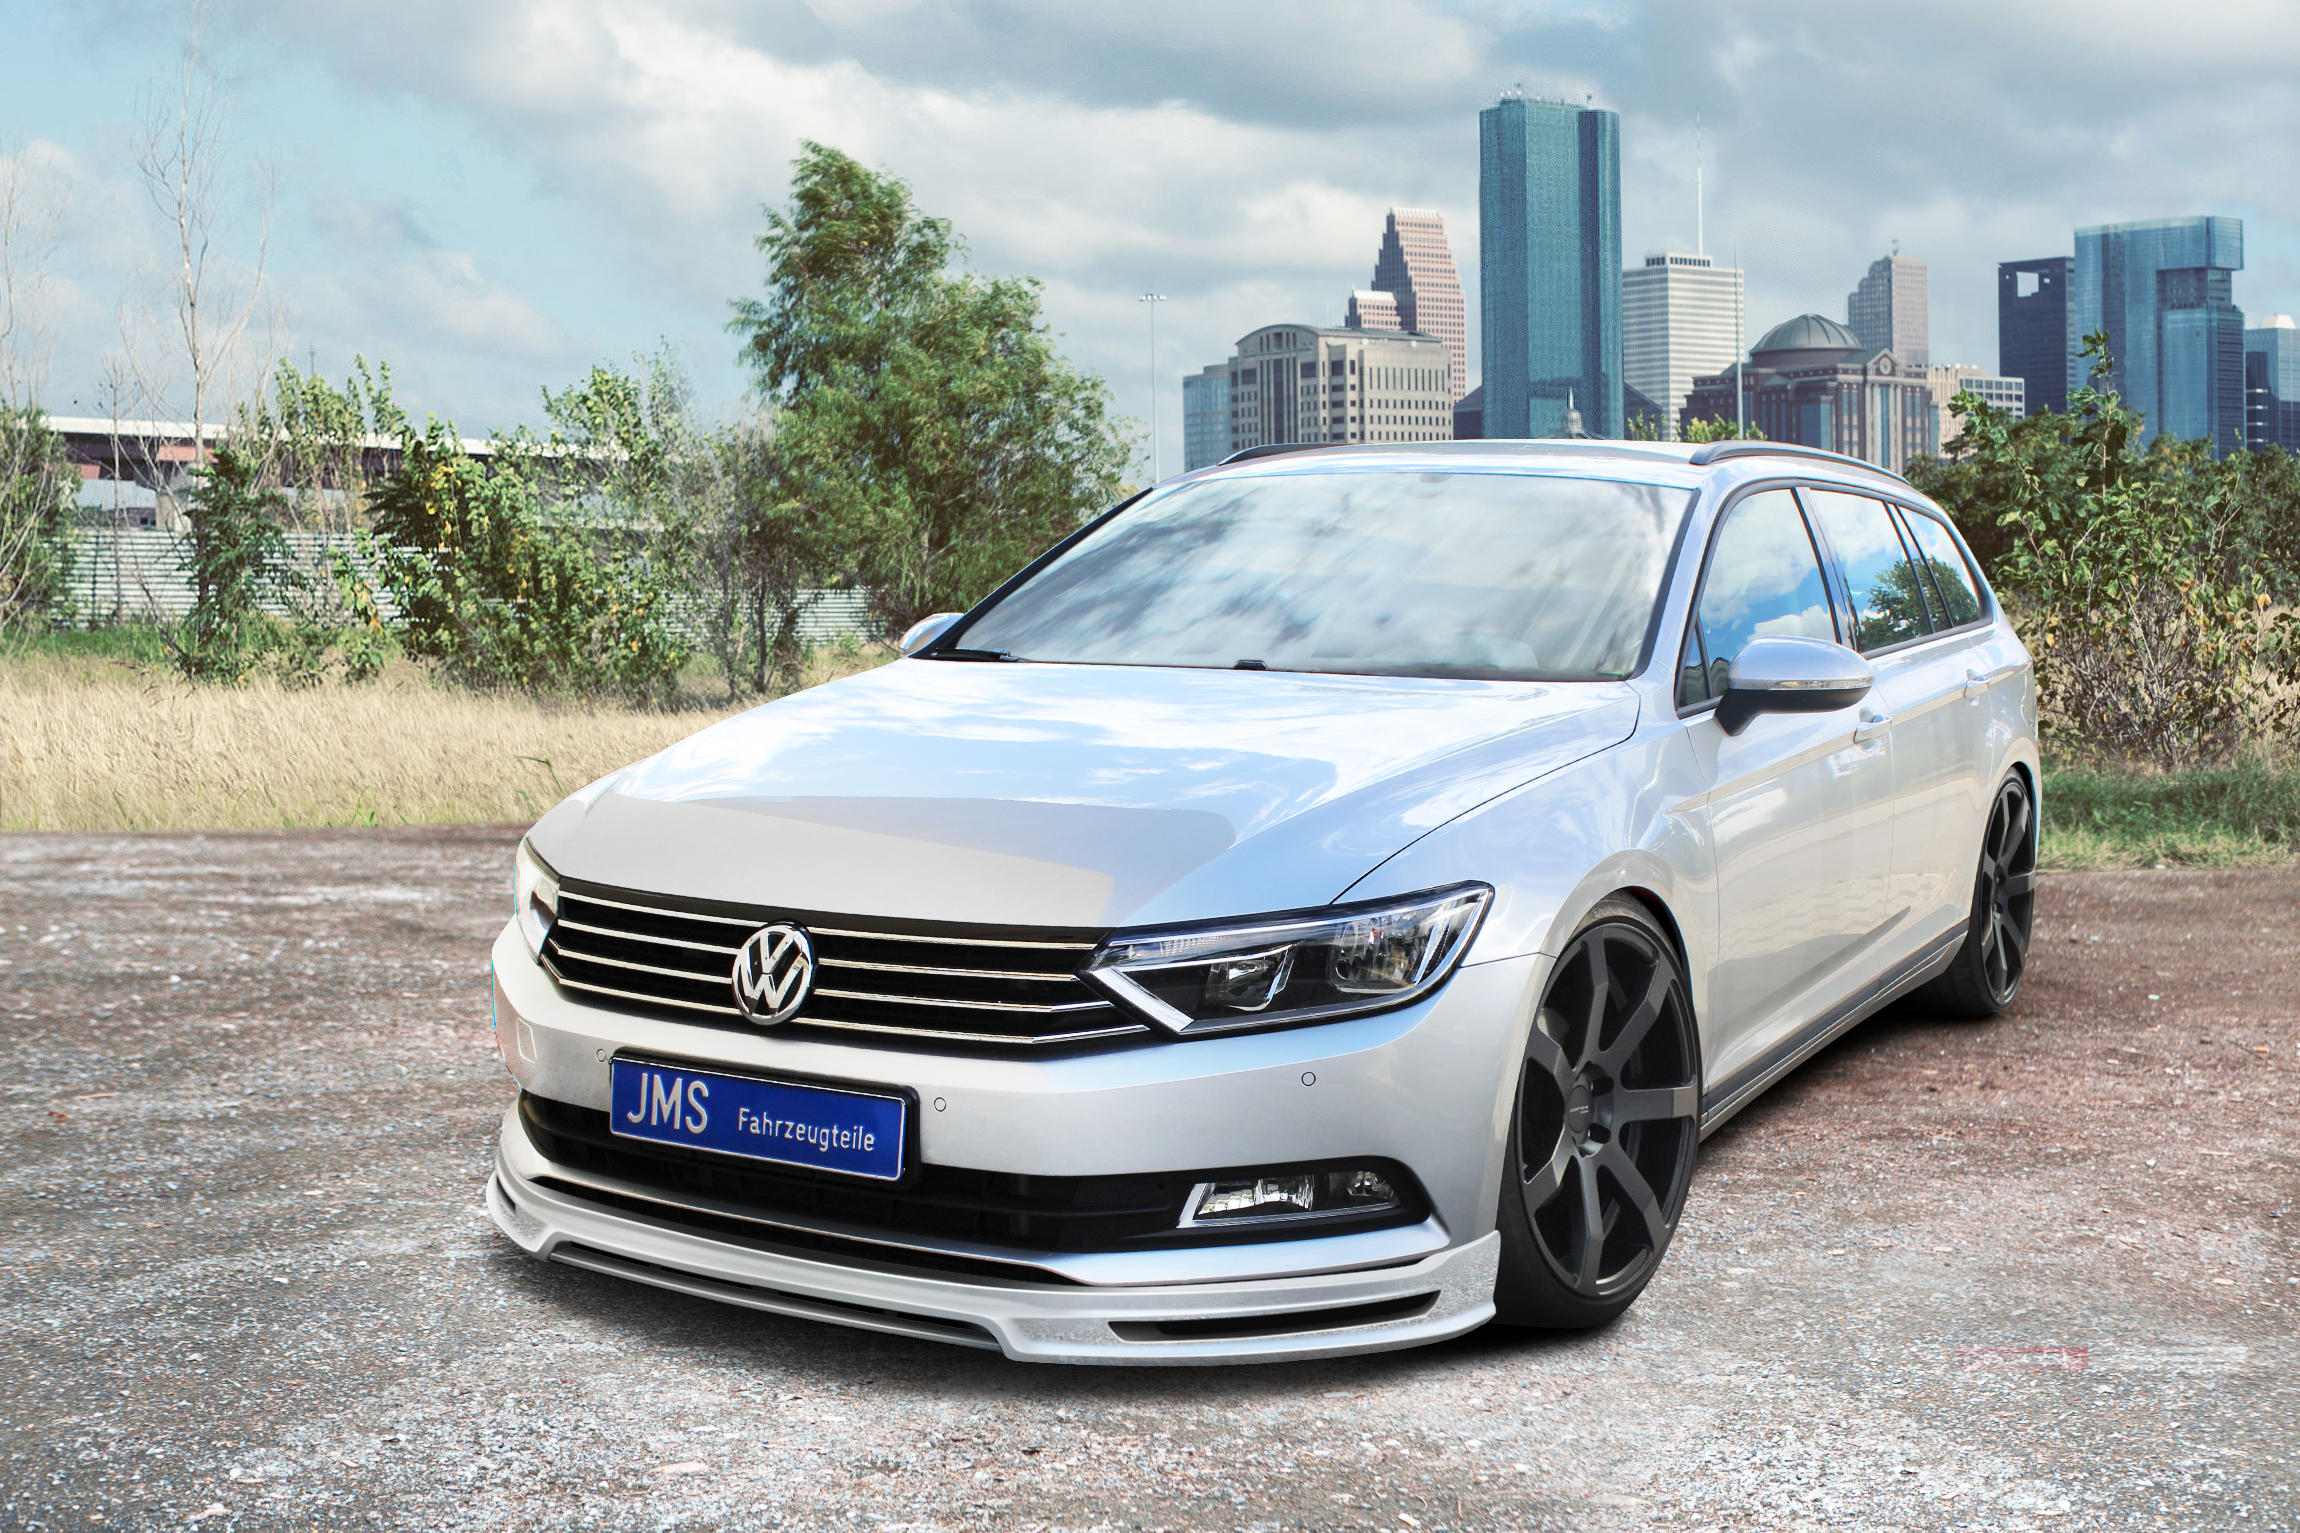 New Styling For The New Passat 3c B8 From Jms Fahrzeugteile Gmbh Jms Fahrzeugteile Gmbh Press Release Pressebox